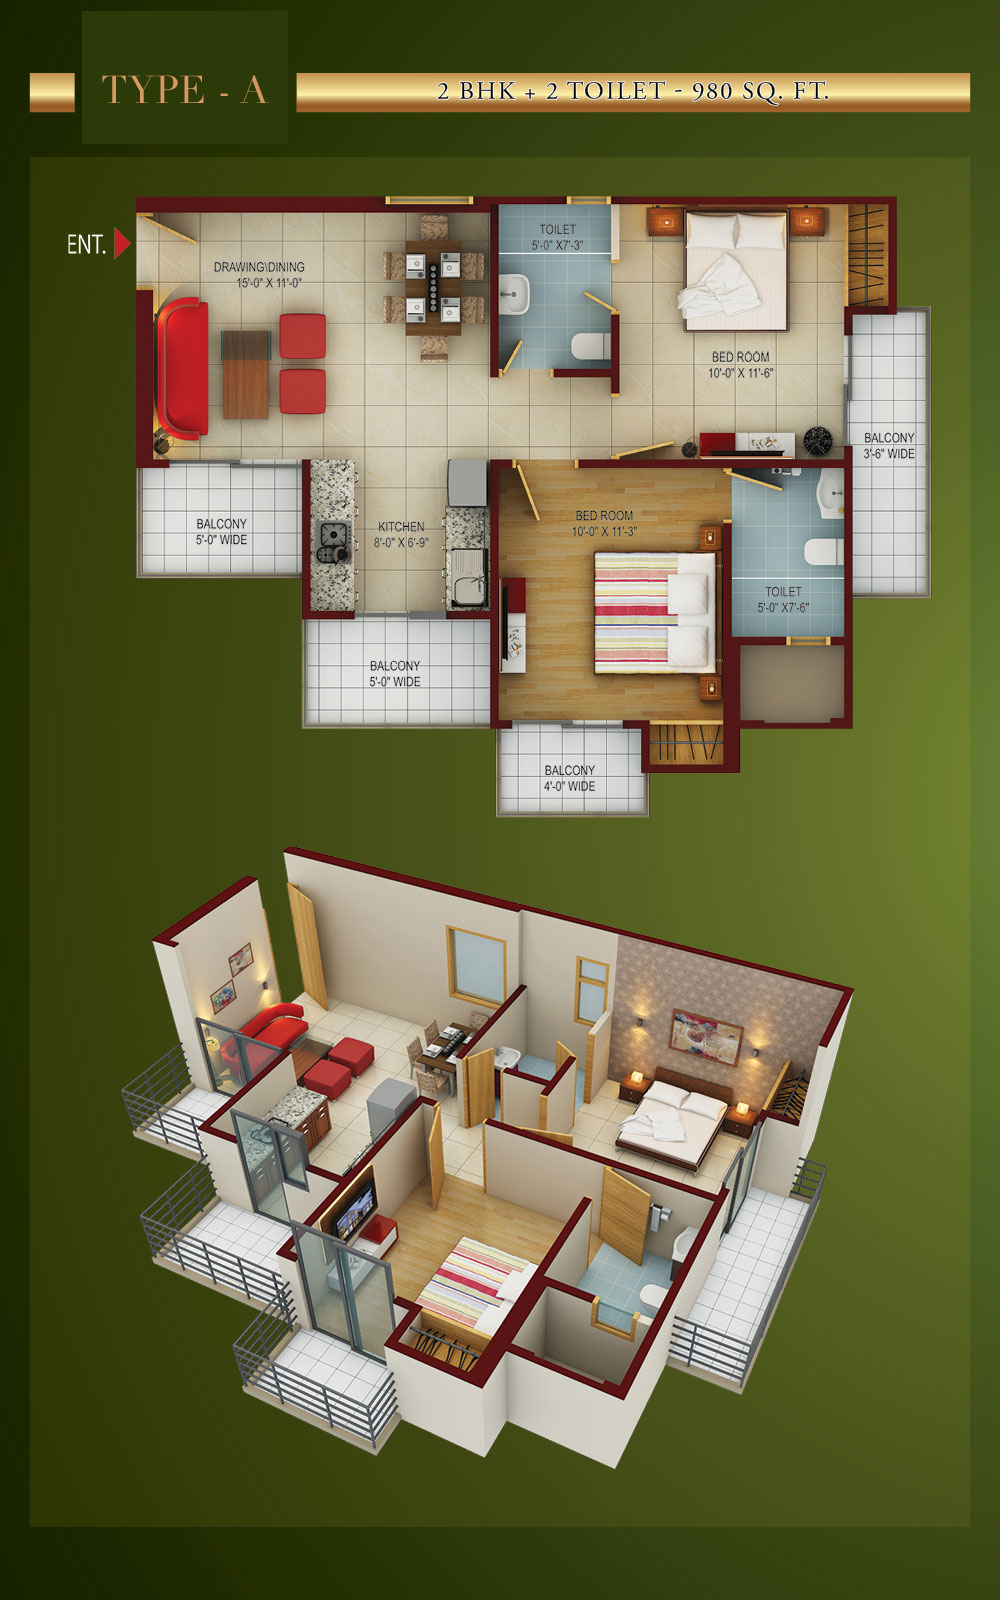 Samridhi Grand Avenue superb offer on 2/3Bhk in noida